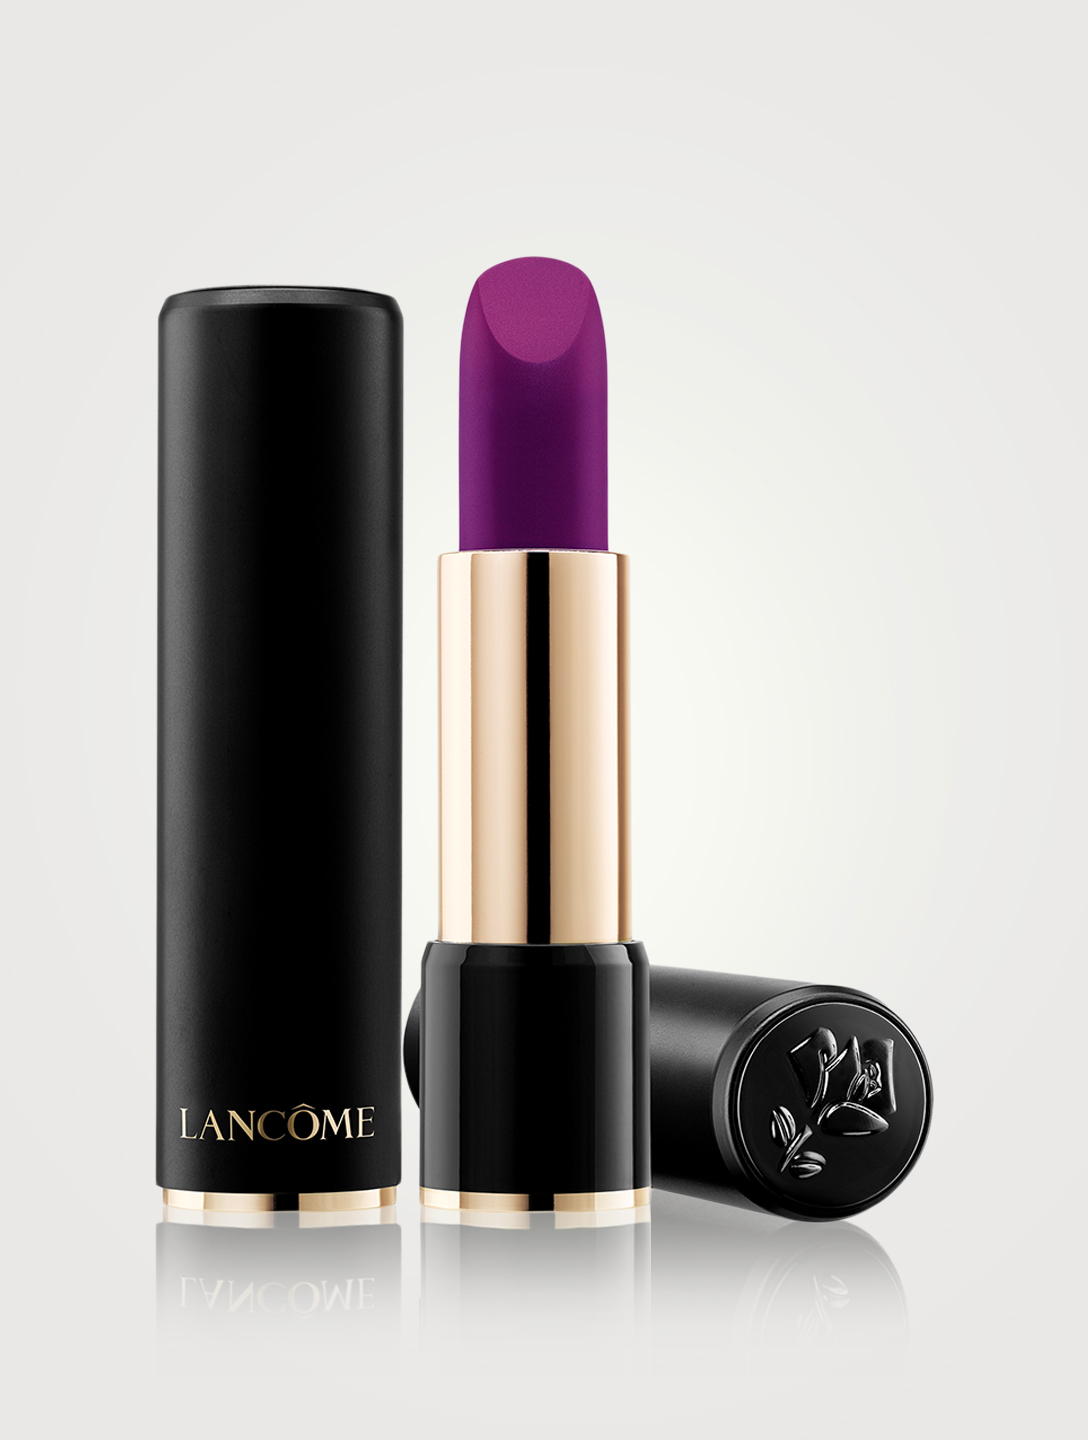 LANCÔME L'Absolu Rouge Drama Matte Lipstick Beauty Purple